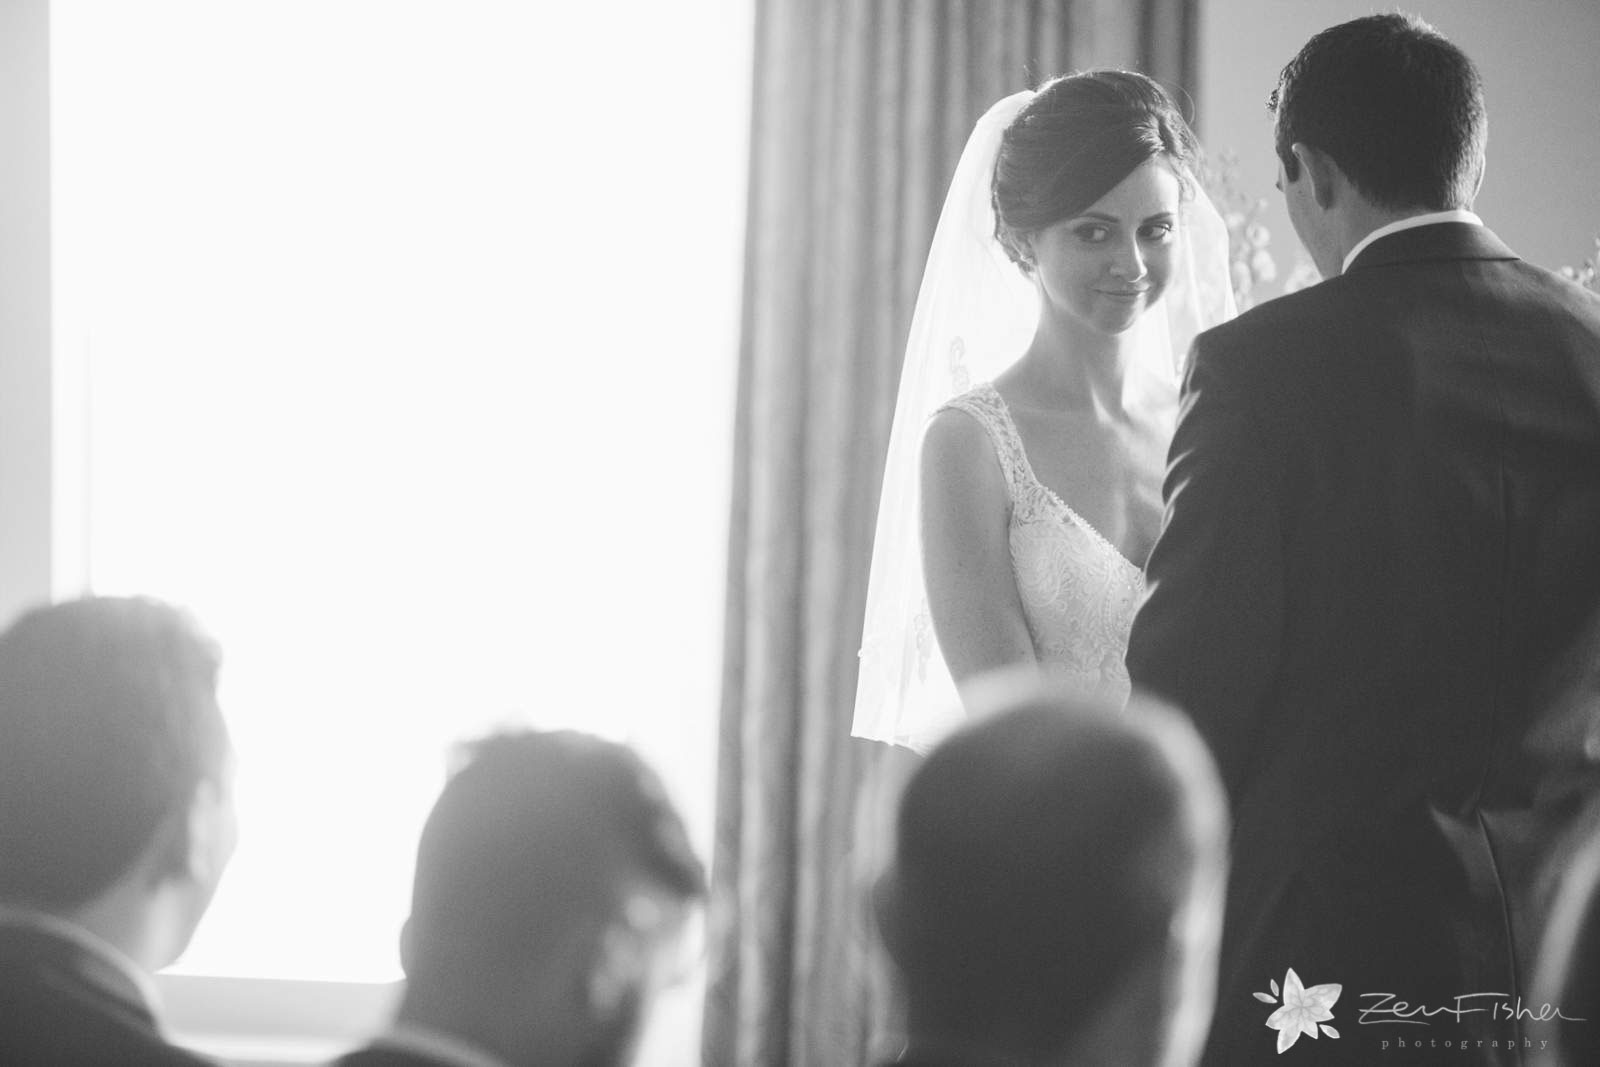 Bride's reaction to groom's vows, bride smiles at wedding guests during ceremony, black and white